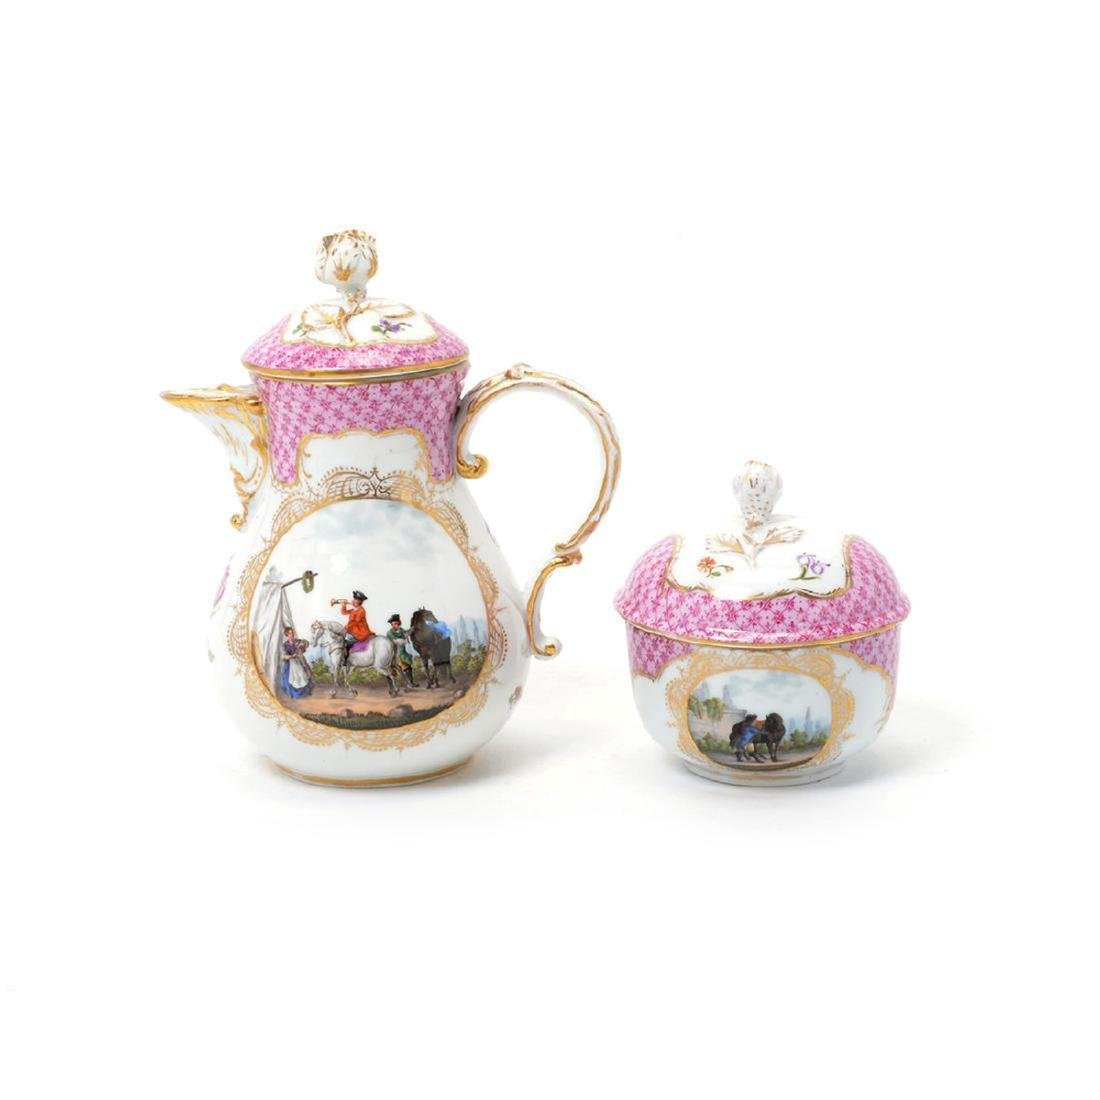 """Meissen"" Porcelain Tea Service/Tray (6 Pcs) - 8"